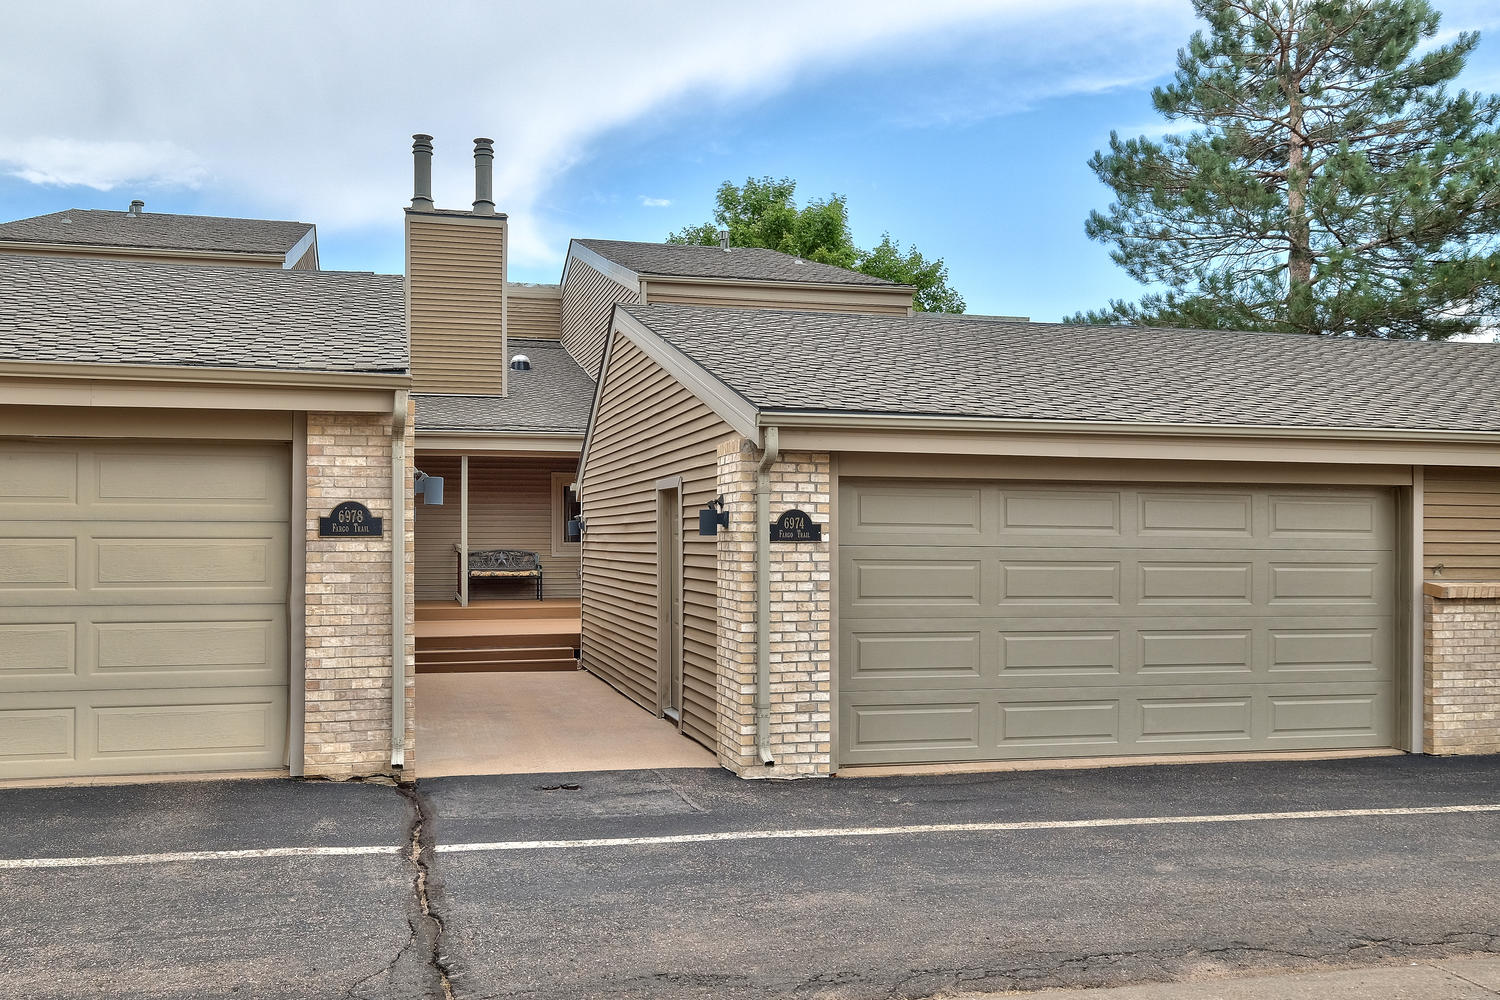 6974 Fargo Trl, Littleton, CO 80125